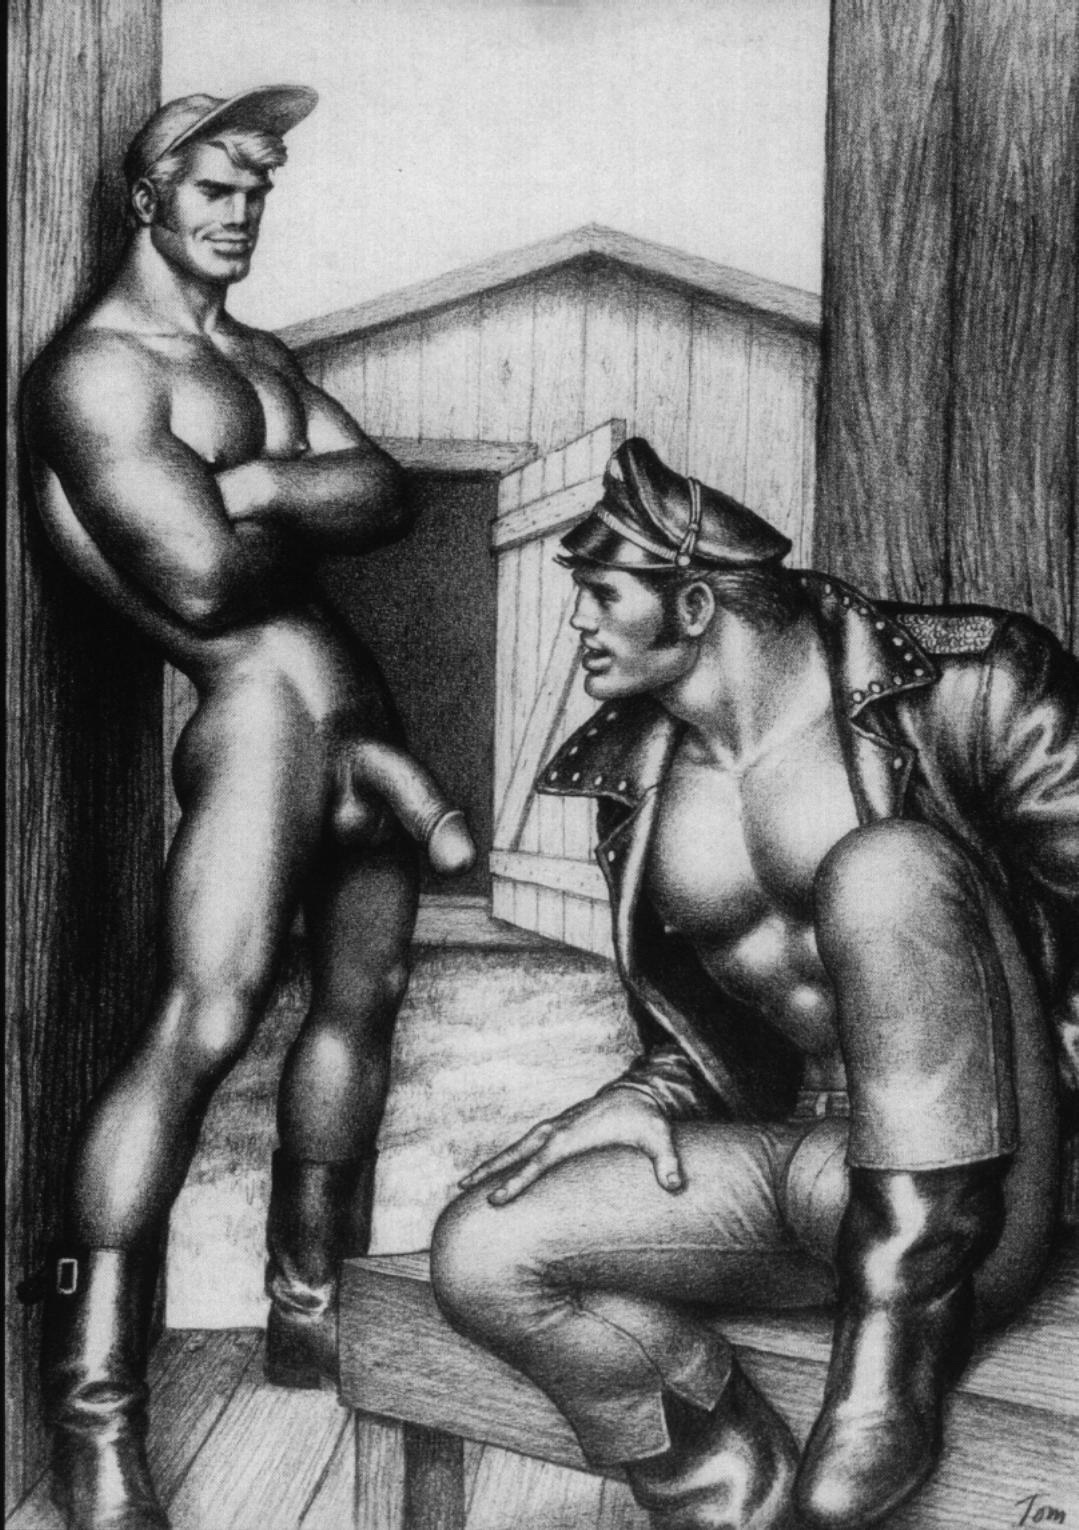 Works of the iconic artist tom of finland exhibited in japan for the first time